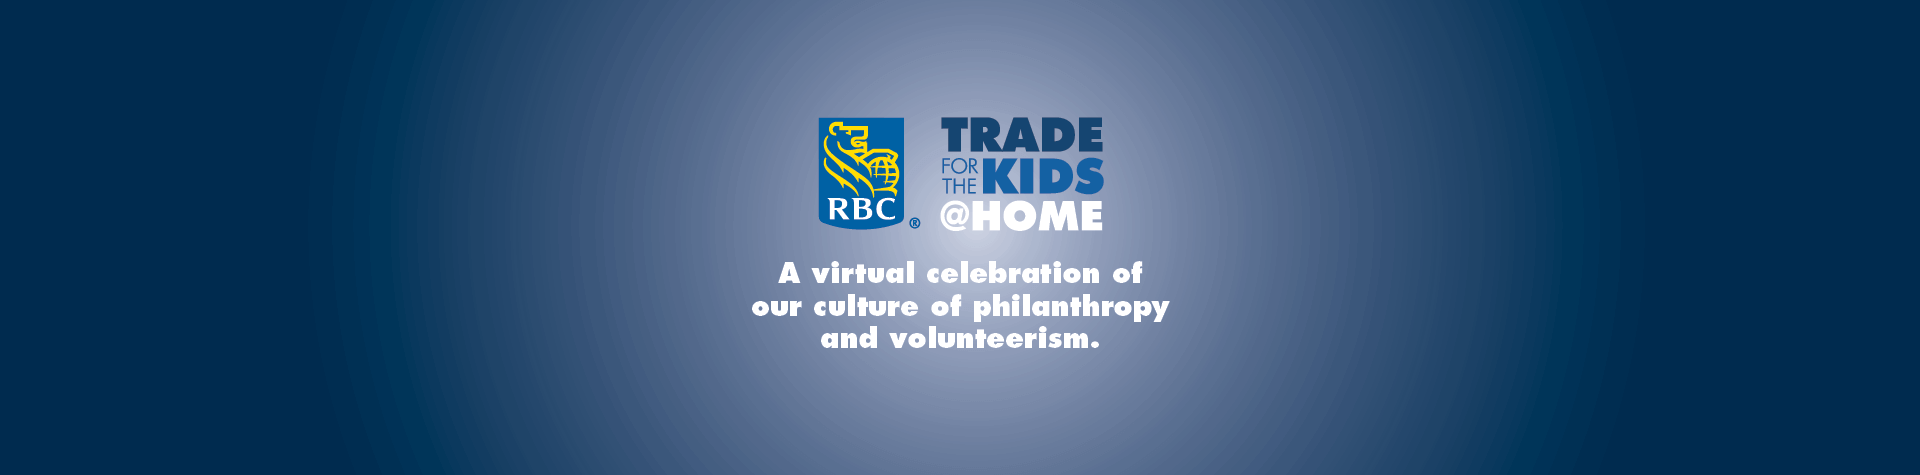 RBC Trade for the Kids @ Home